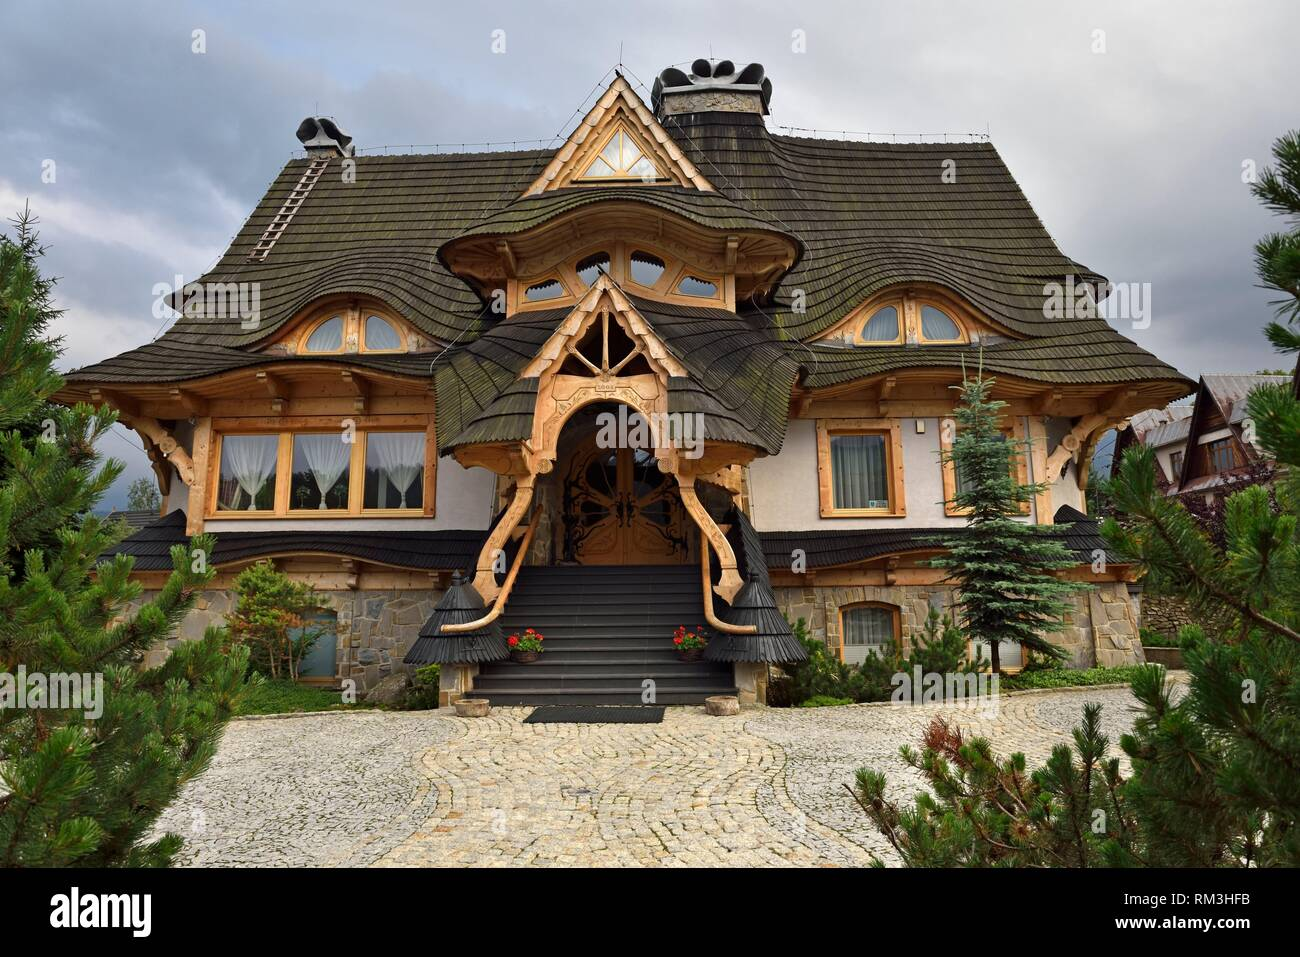 Maison Modern High Resolution Stock Photography And Images Alamy